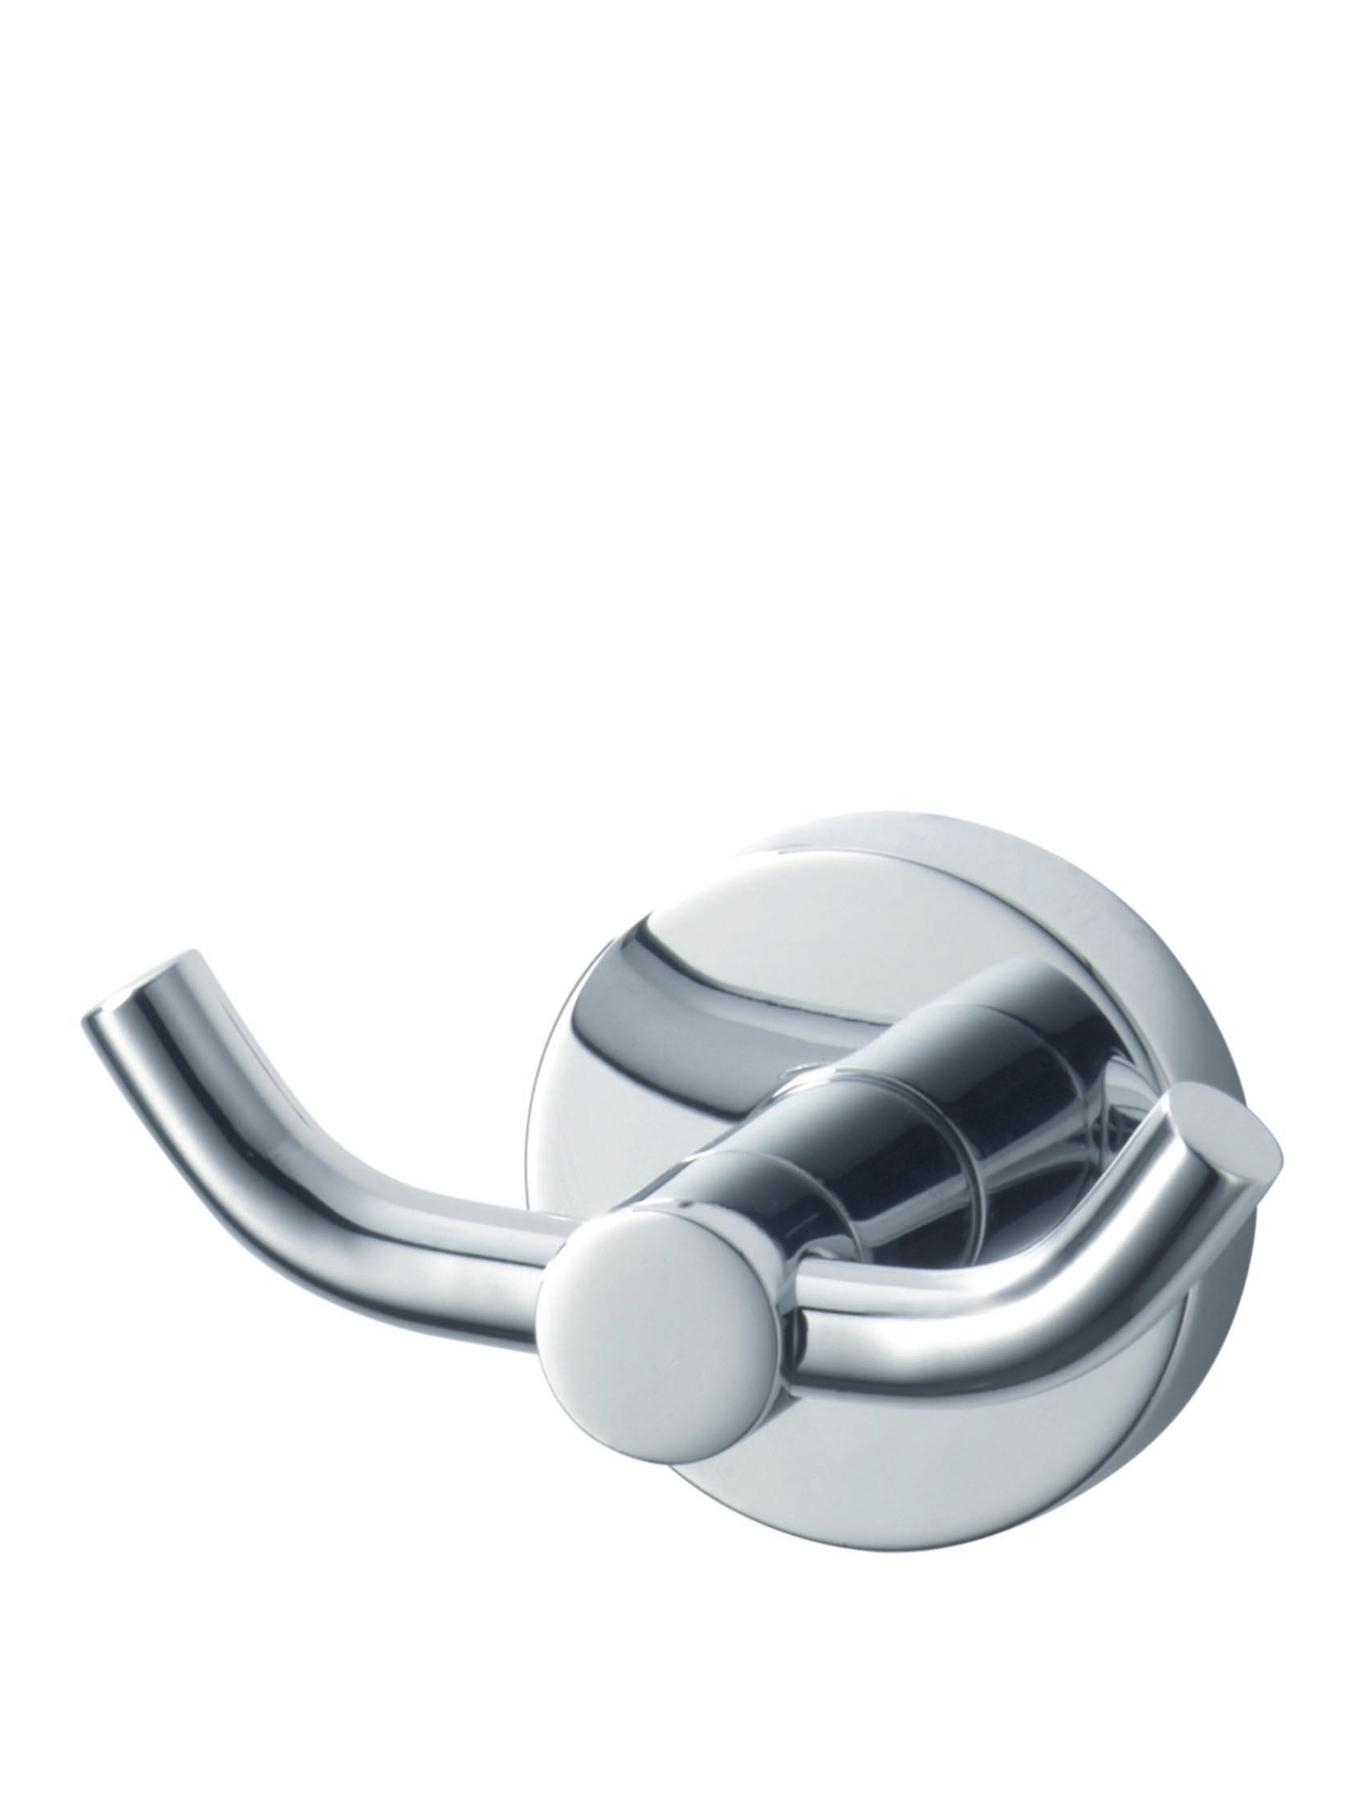 Kosmos Double Chrome Bathroom Hook